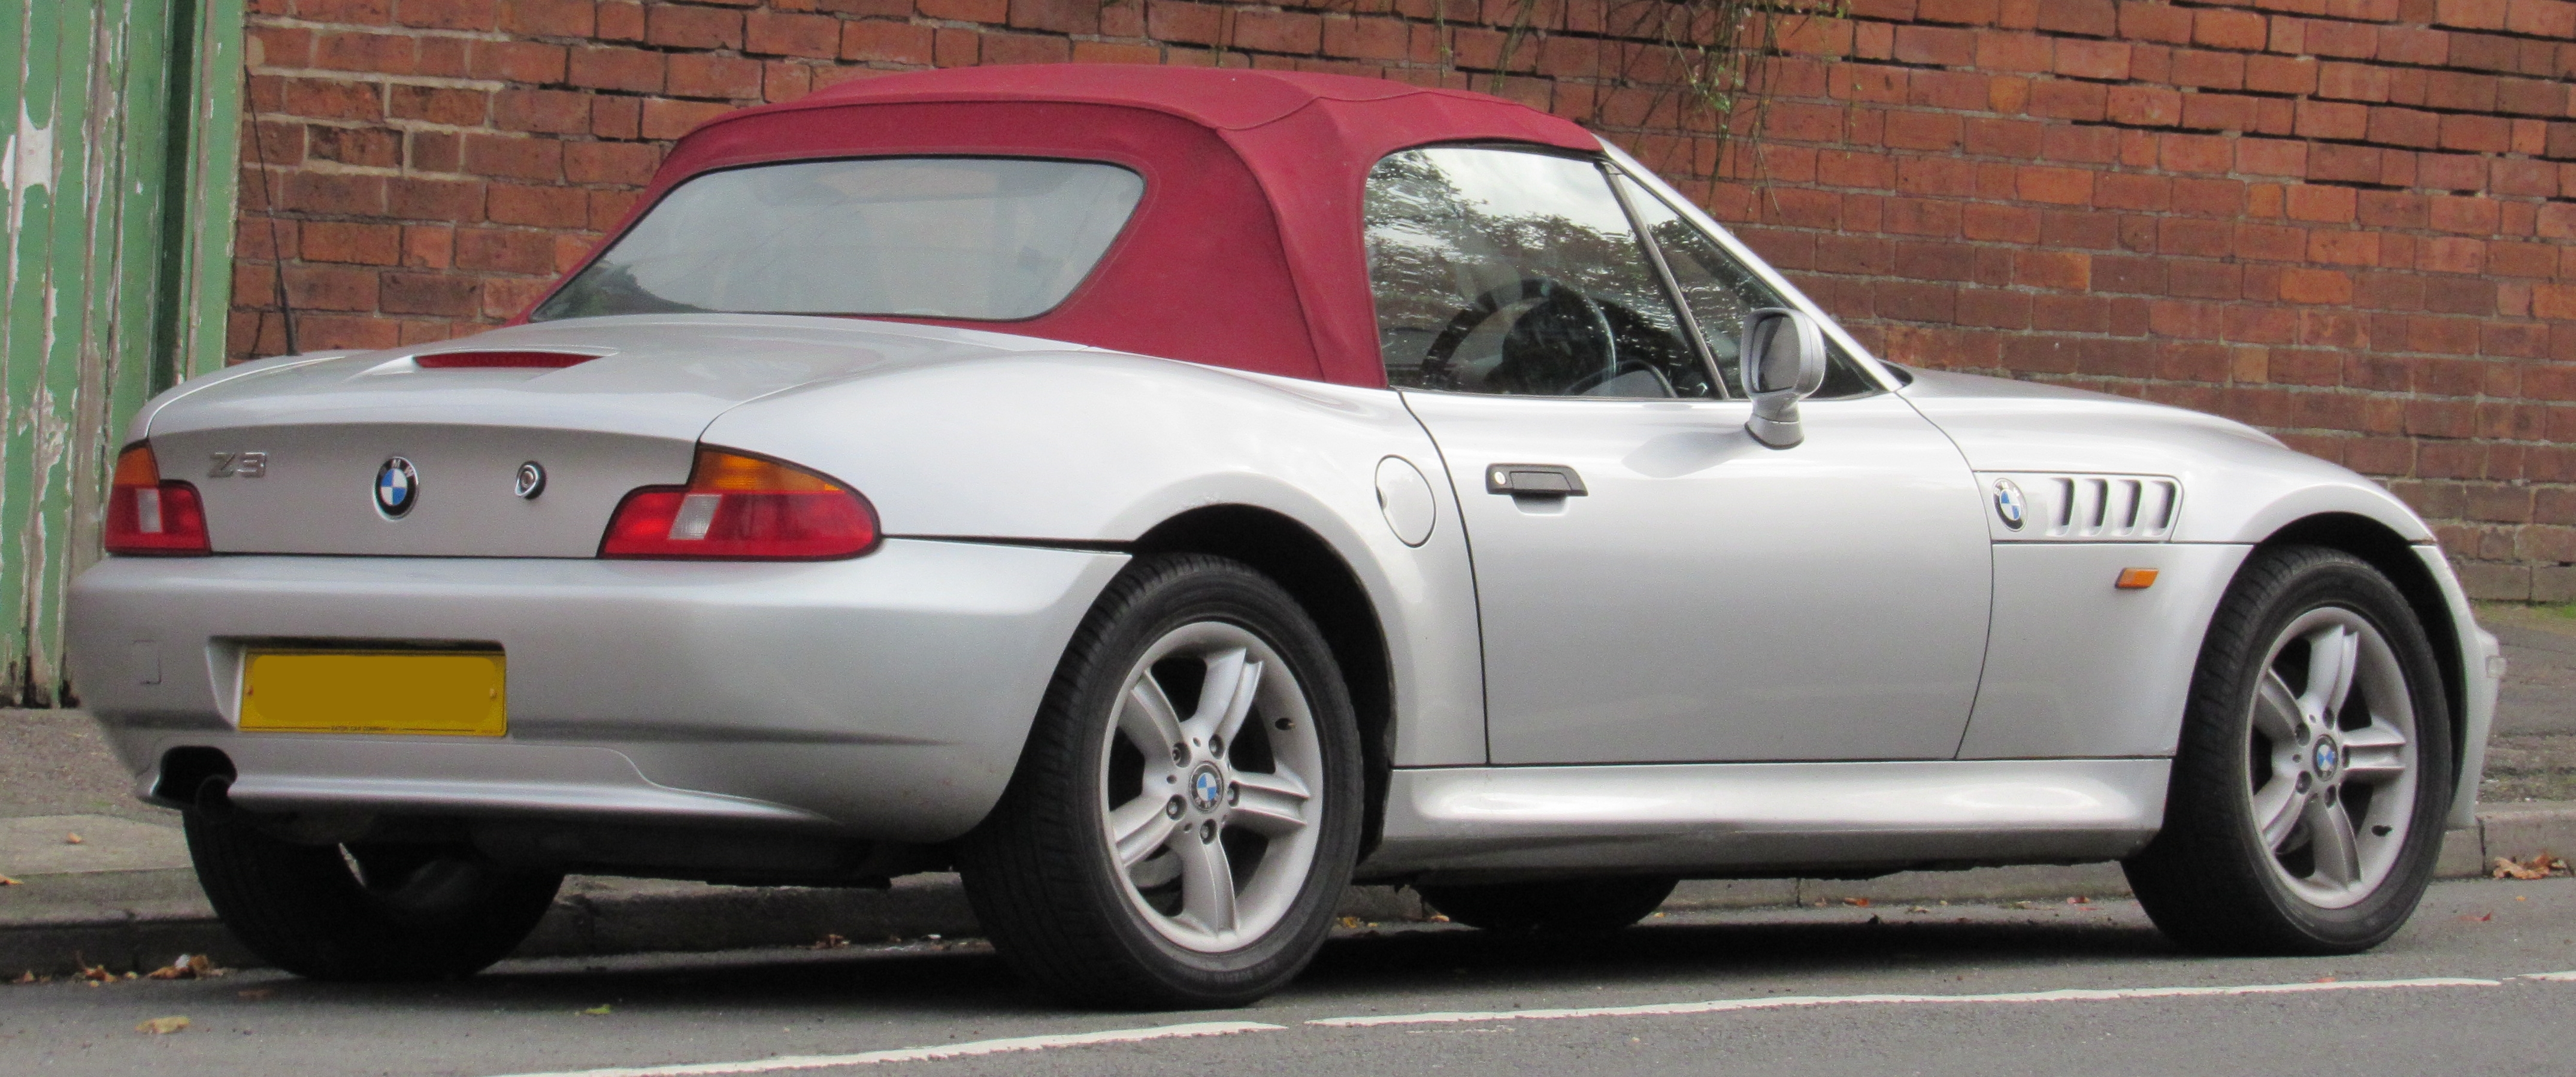 File 1999 Bmw Z3 1 9 Rear Jpg Wikimedia Commons